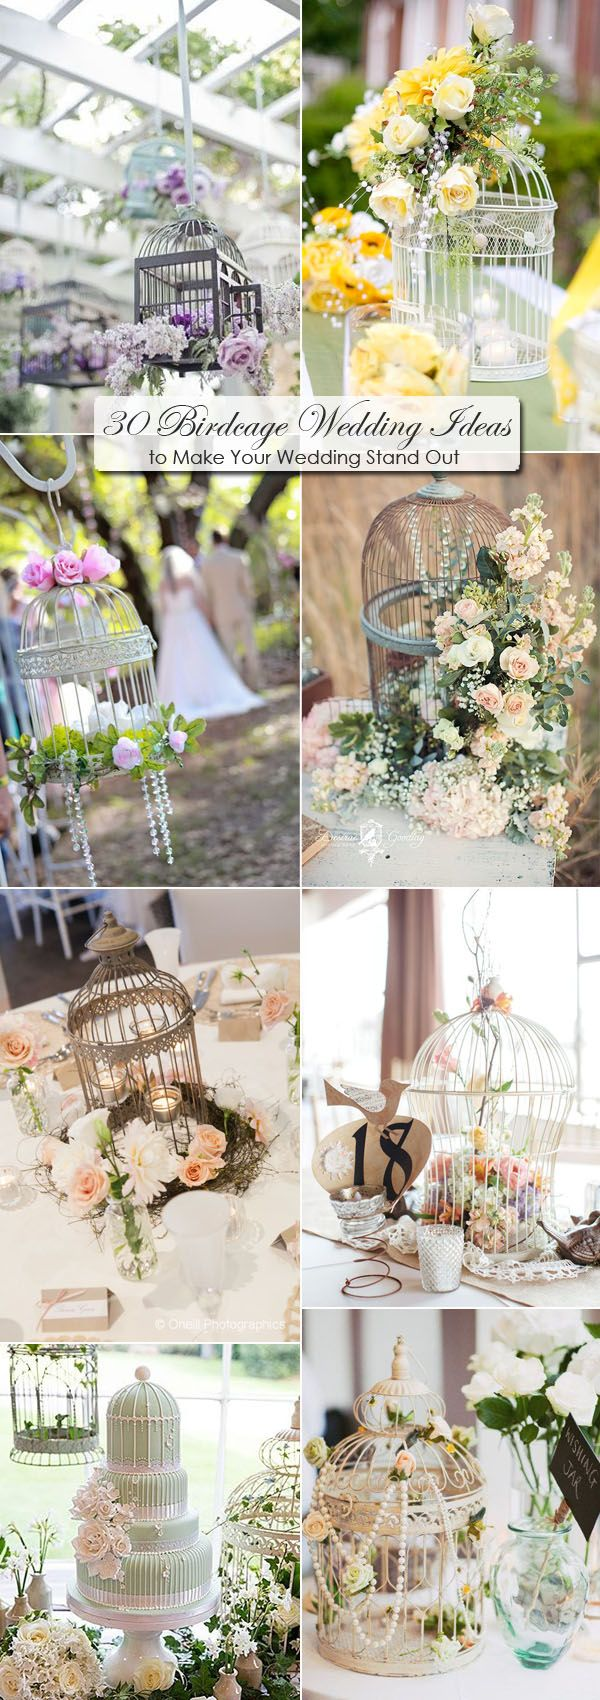 There's really no other lighting evokes romance quite like flickering candlelight. Classy, timeless and oh-so- pretty, wedding candles ideas could show you an inexpensive way to make your wedding day more romant...